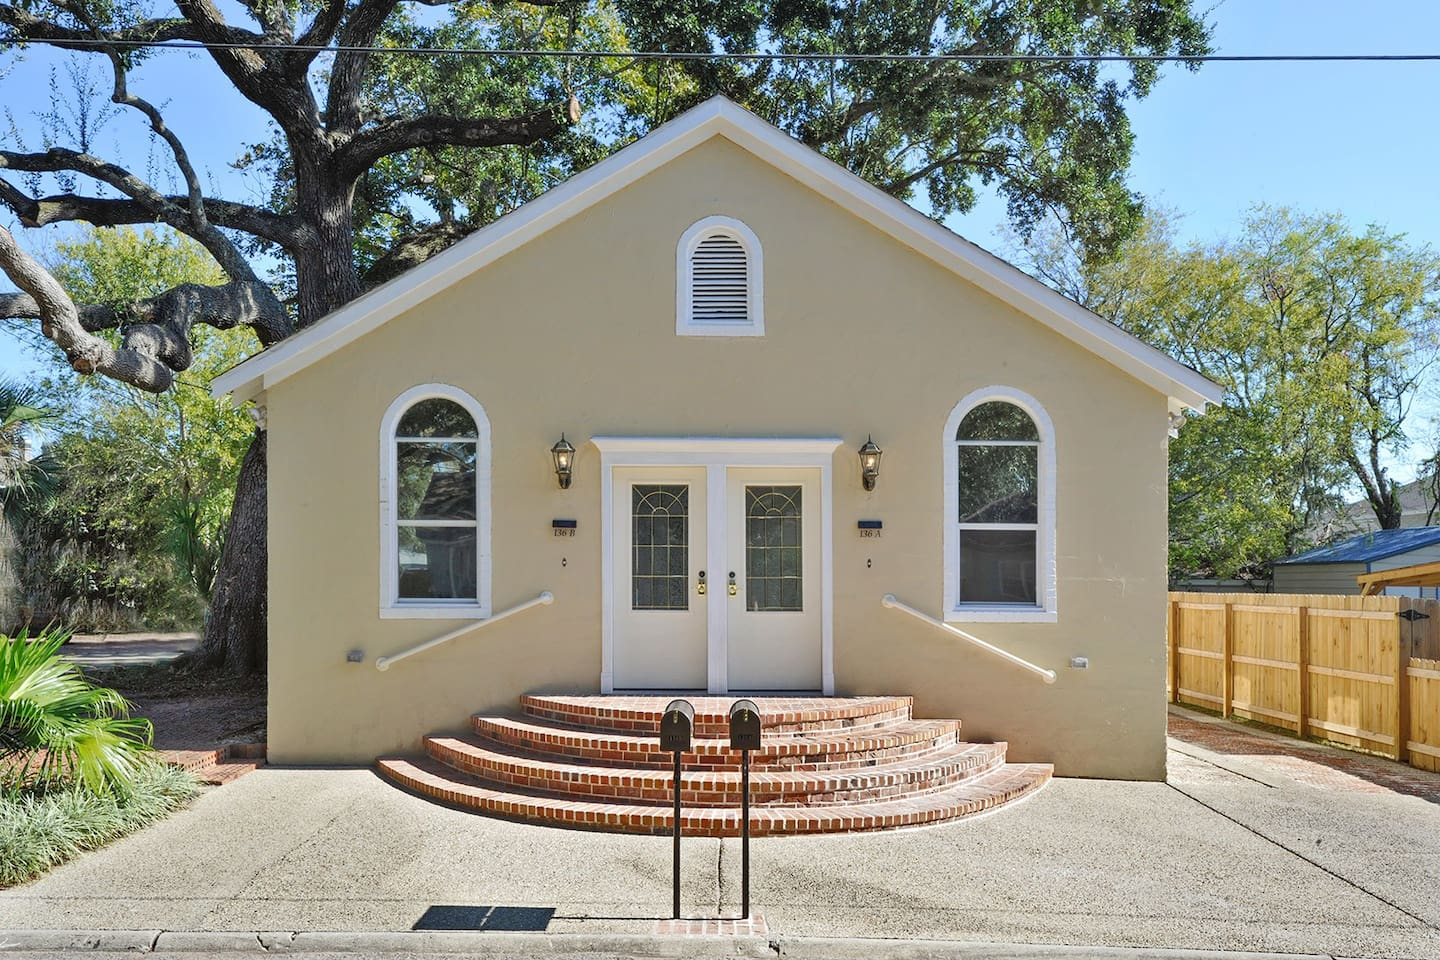 Walk to the casinos, beach and downtown Biloxi!  Come and enjoy the charm of this completely  remodeled Historic home.  This home is a combination of 2 units that give your group a total of 4 bedrooms, 4 bathrooms, 2 living areas and 2 kitchens.  There is also a sleeper sofa and a fold away single bed - just in case.  :-)  Walk 2 blocks to the beach, 1 1/2 blocks to the new library, and 2-5 blocks to several of the best restaurants in Biloxi.  The casinos are a short walk away, too!